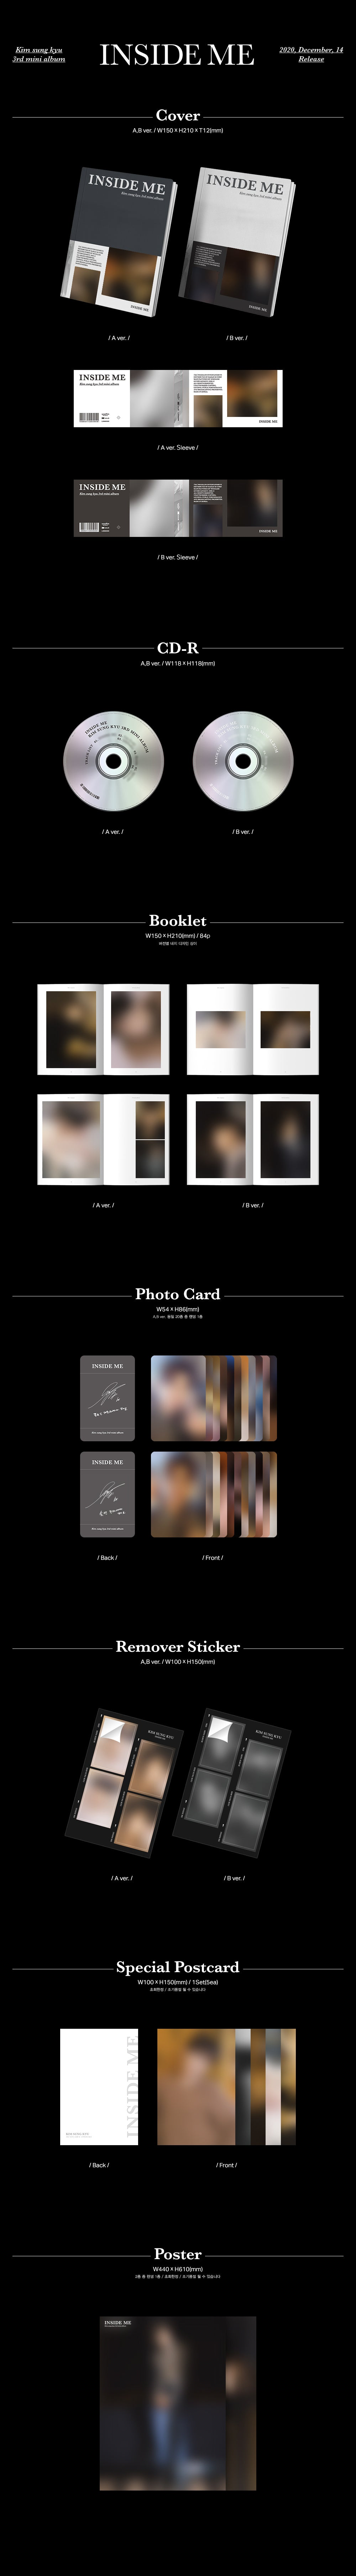 KIM SUNG KYU - INSIDE ME [3rd Mini Album] product details